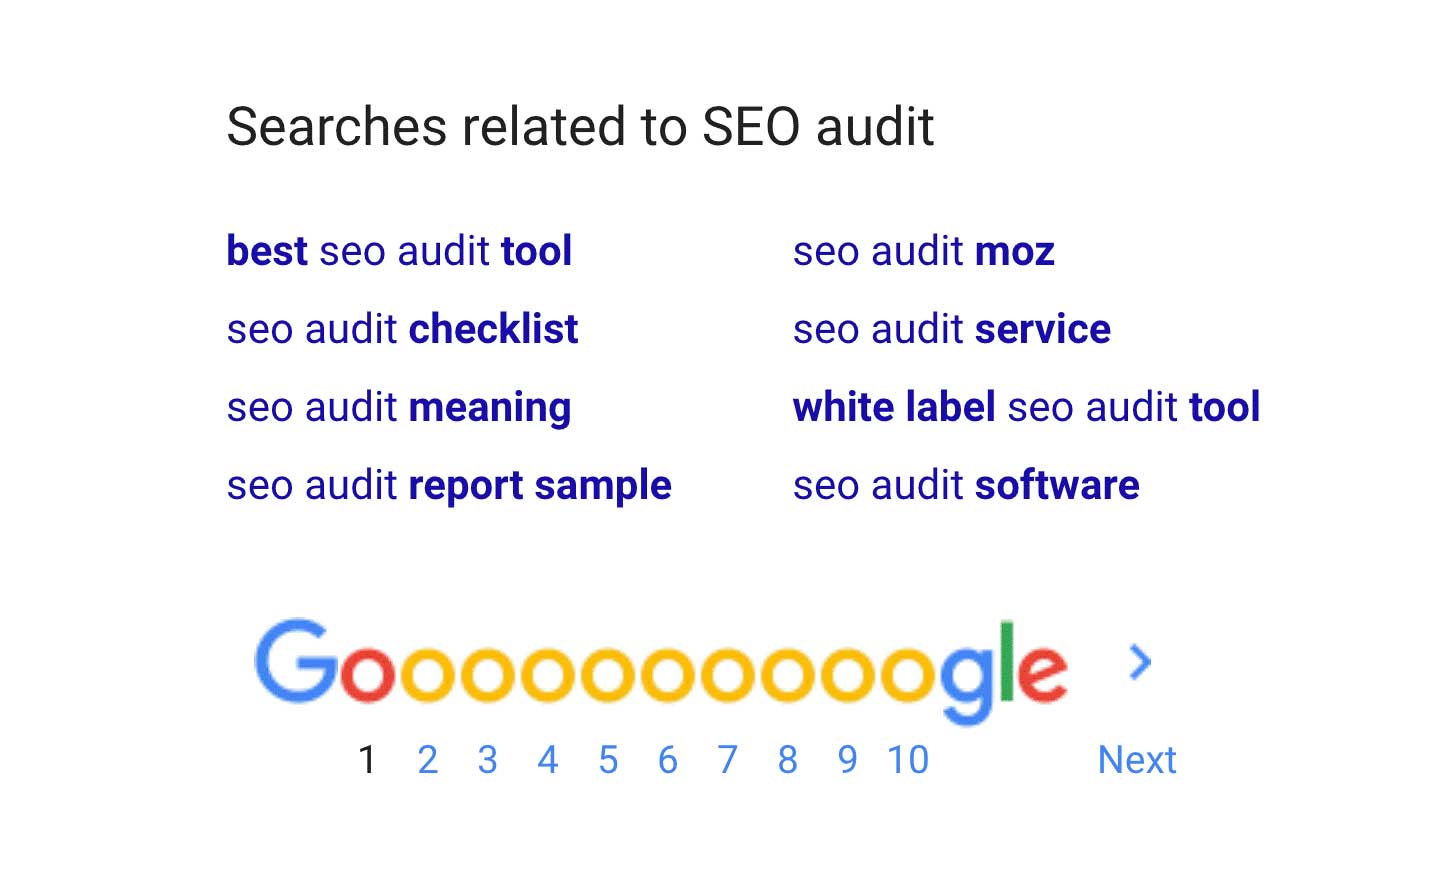 search related to seo aurdit